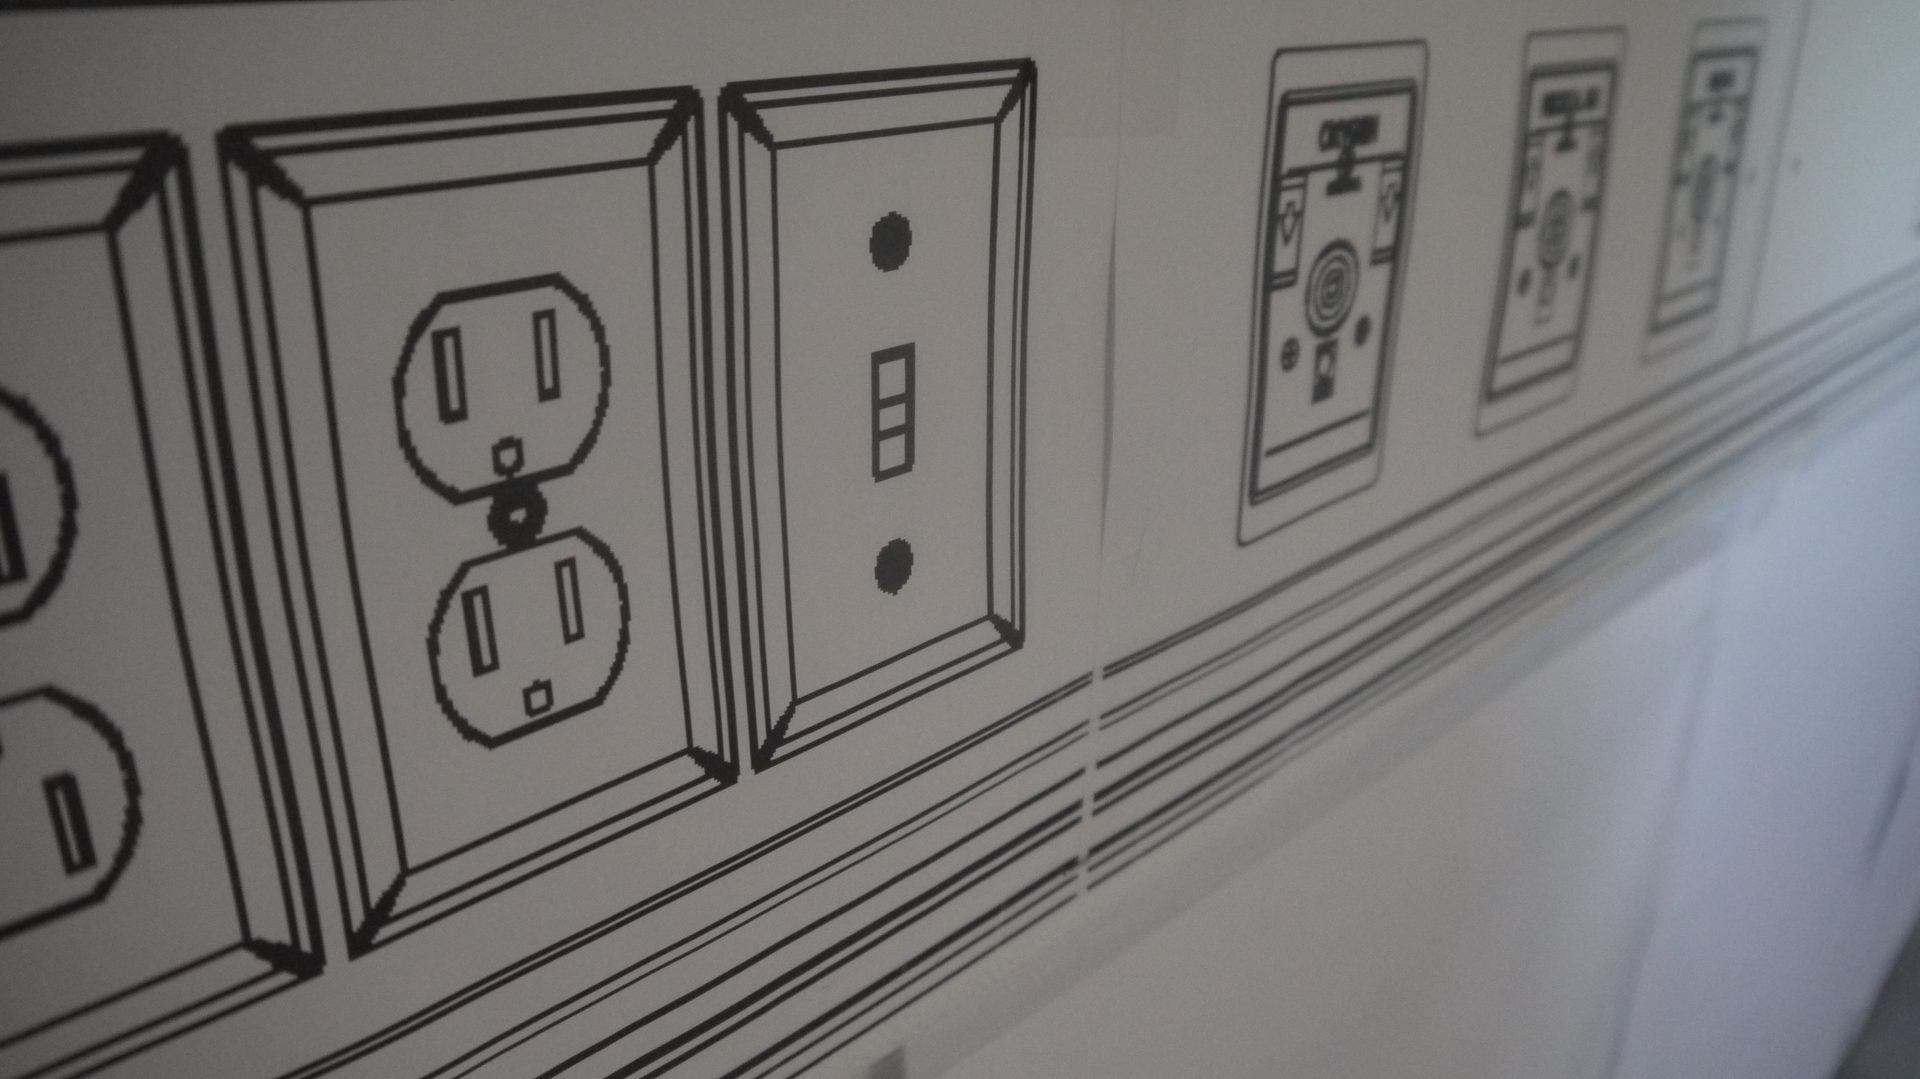 Power outlets featured in one of the mock-up units.